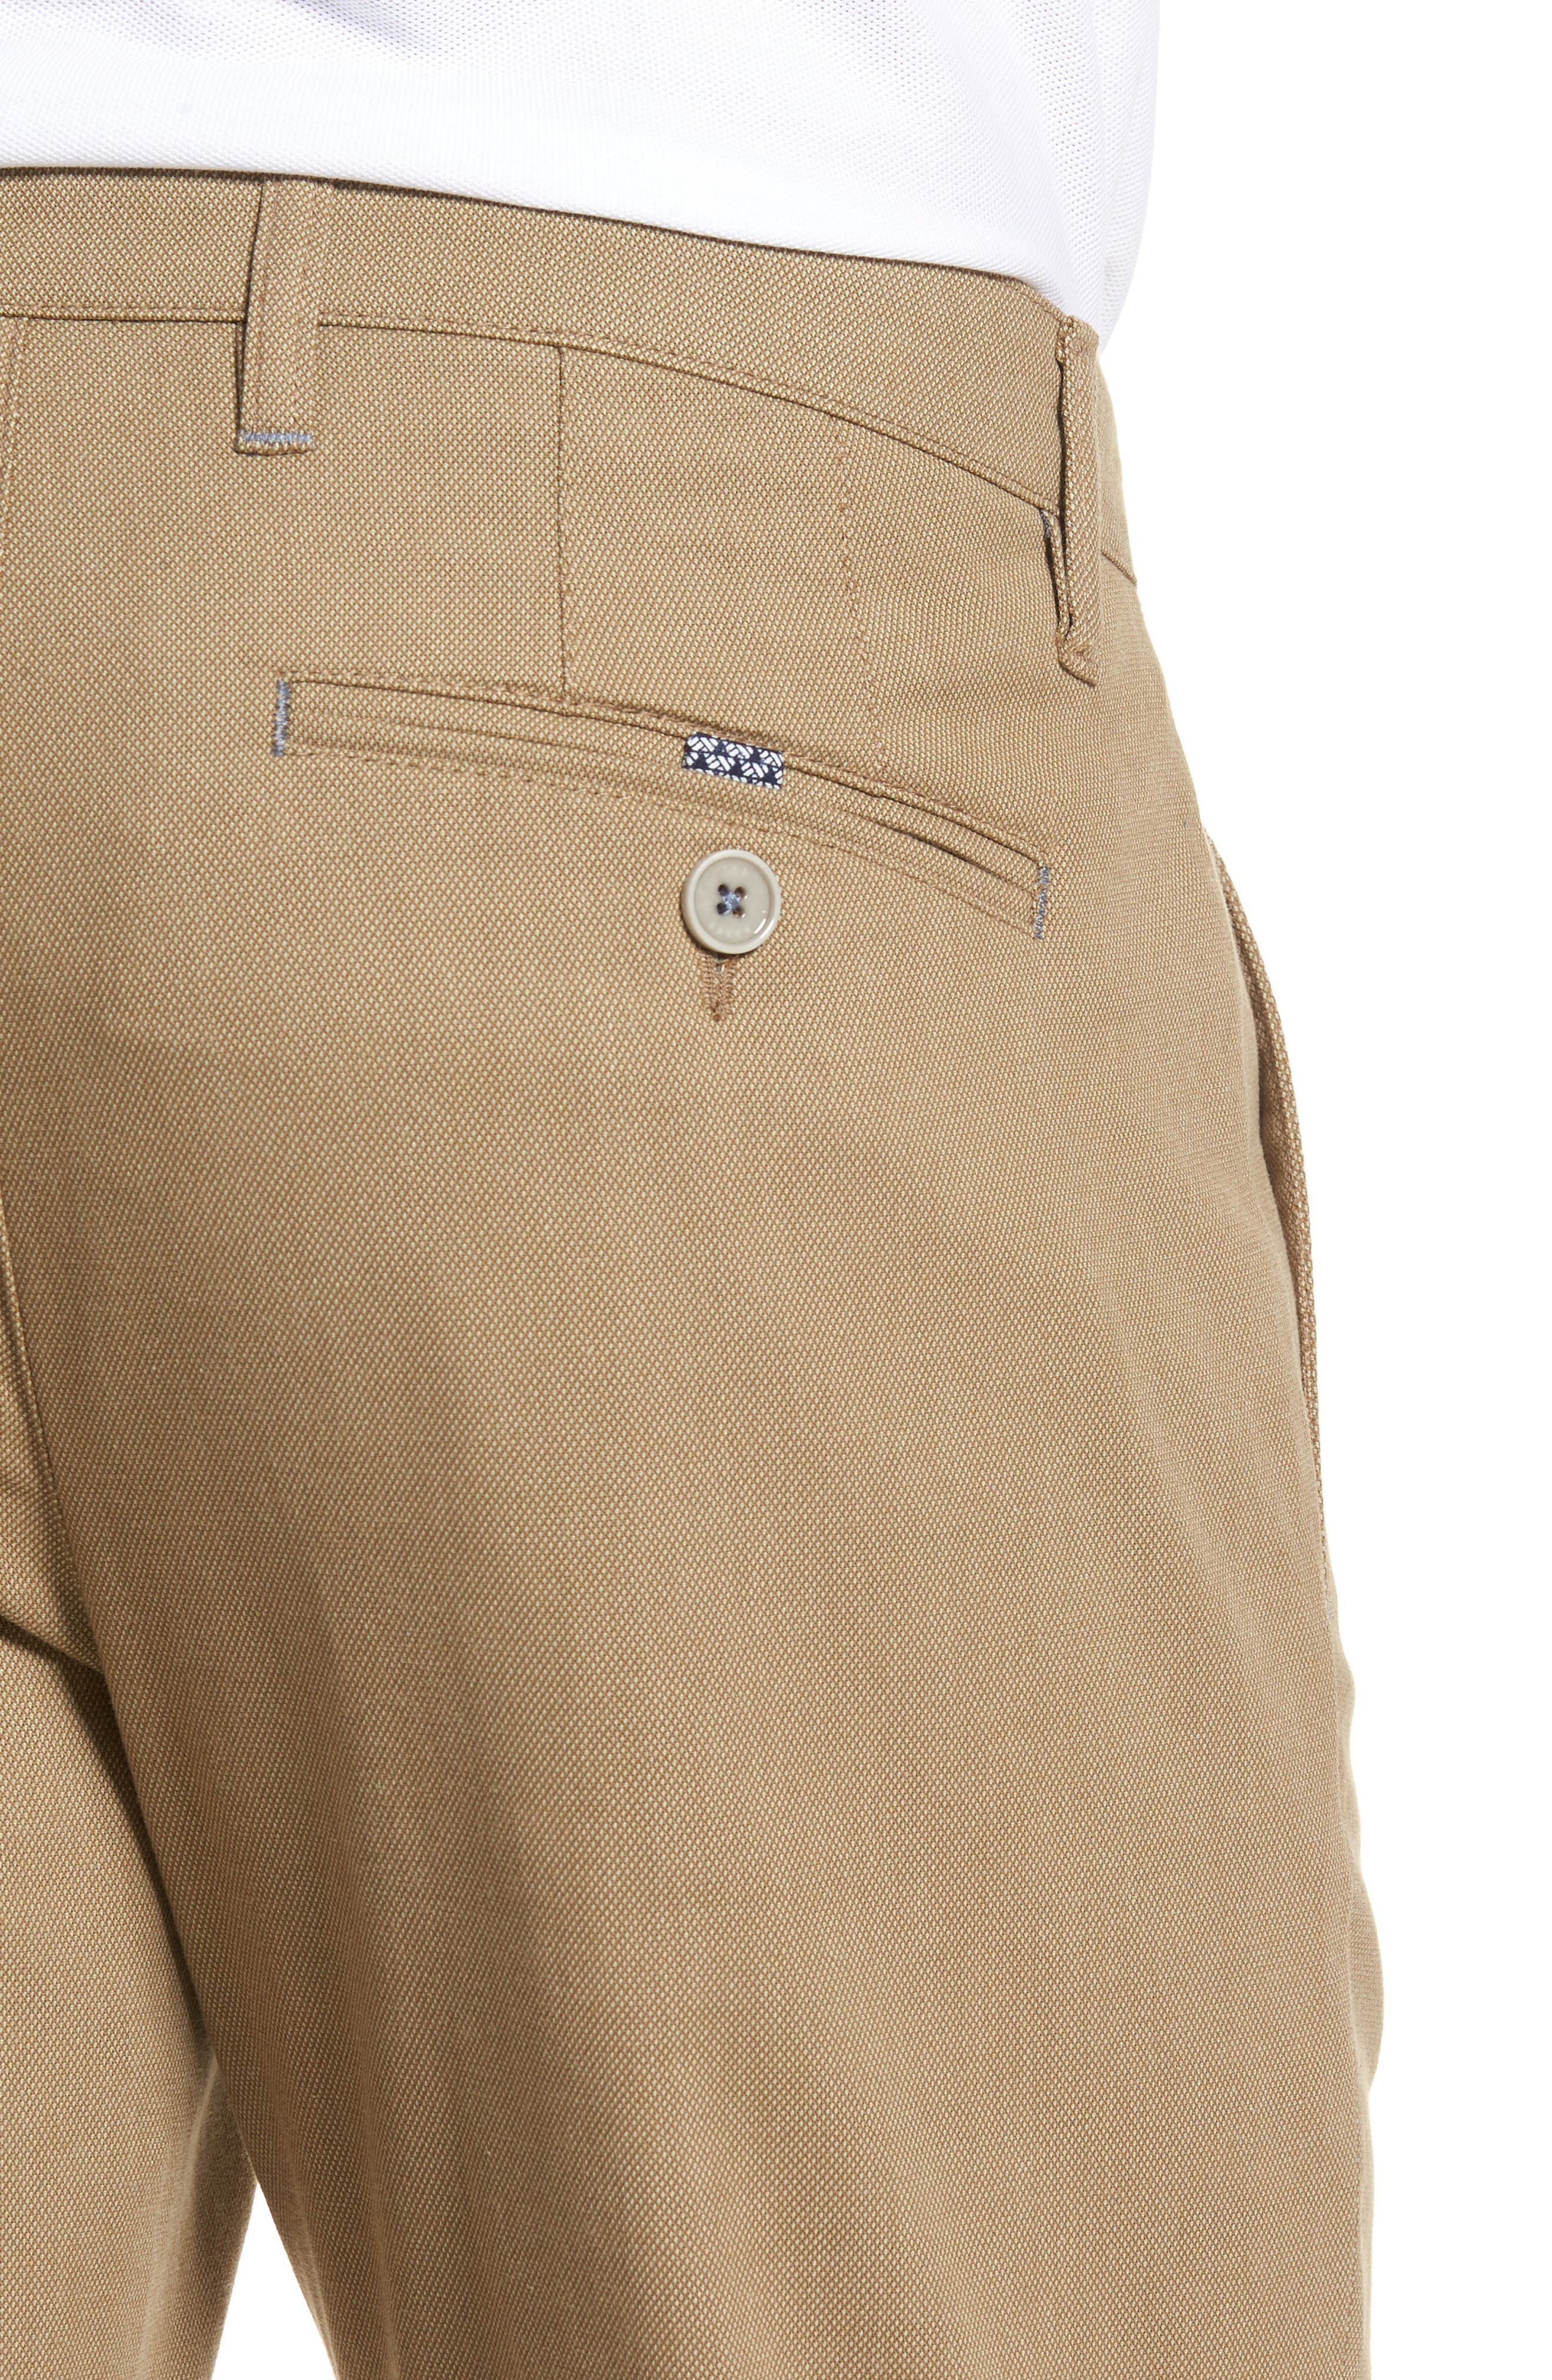 Holclas Classic Fit Chino Pants,                             Alternate thumbnail 4, color,                             250